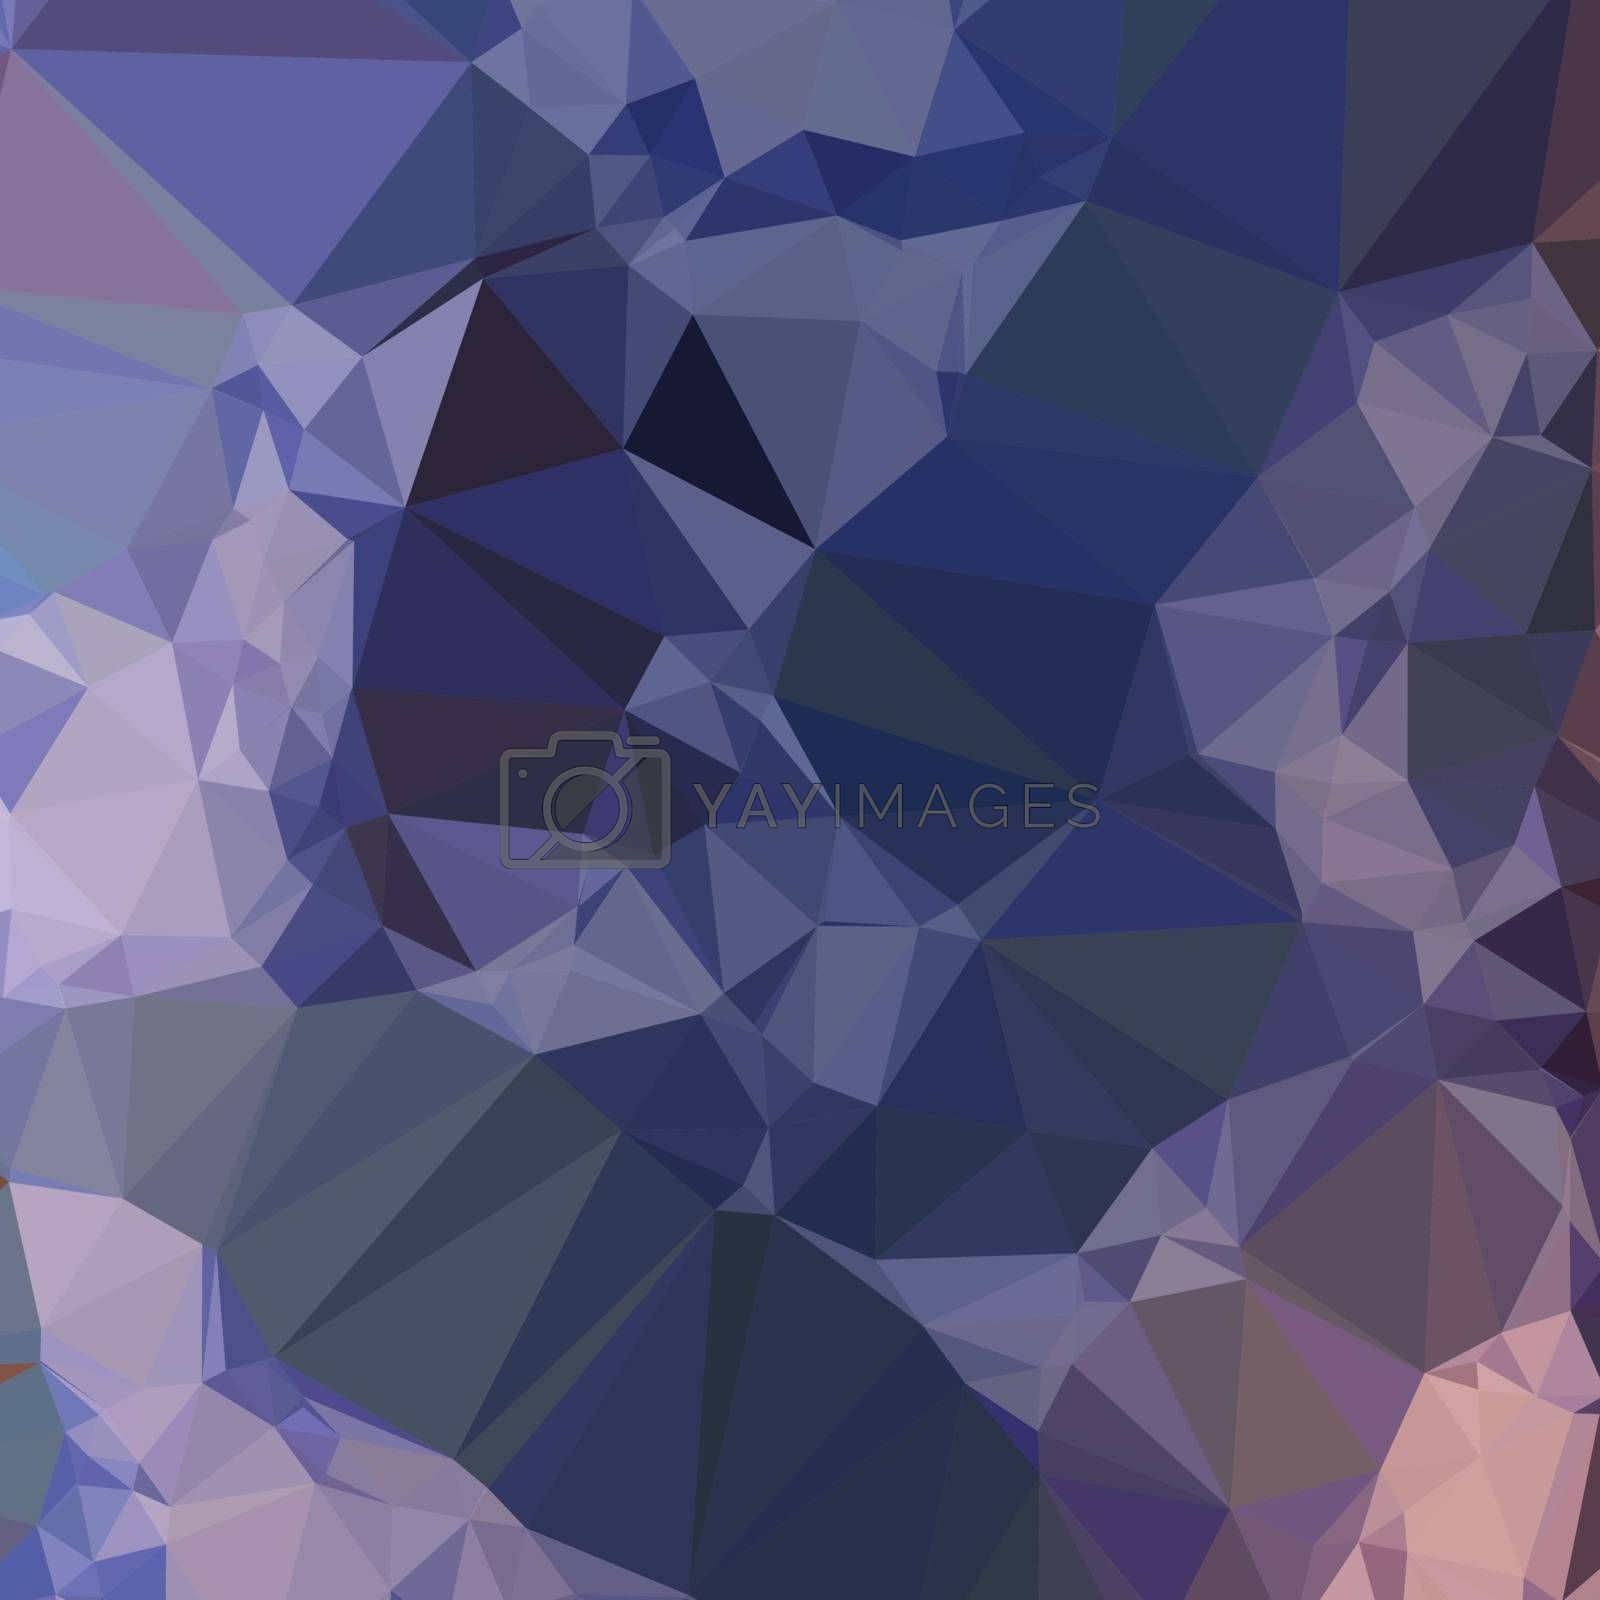 Low polygon style illustration of a bluebonnet blue orange abstract geometric background.